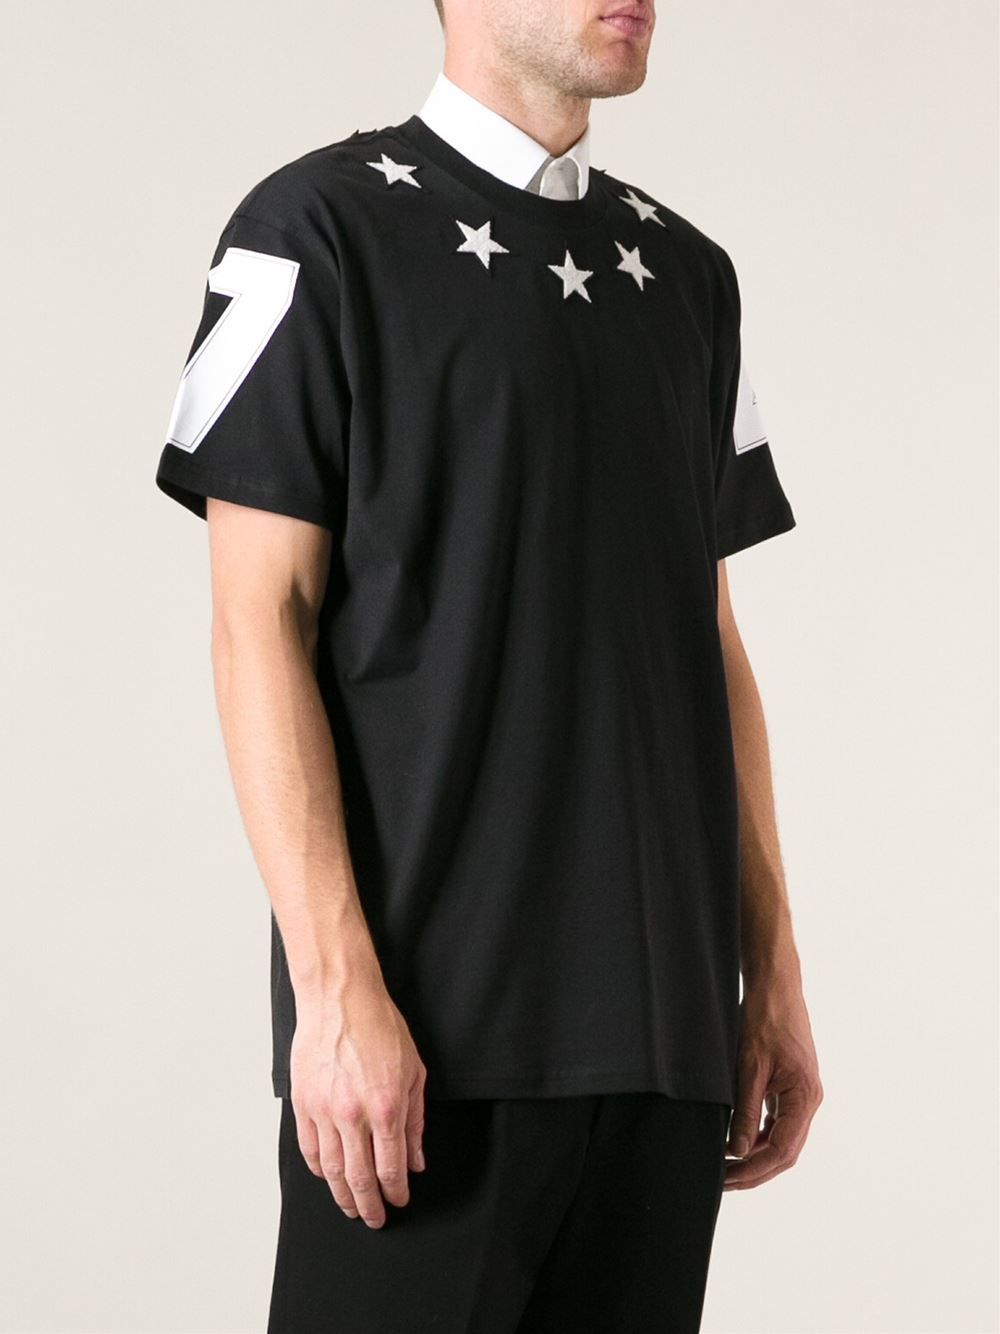 Lyst Givenchy Star Tshirt In Black For Men